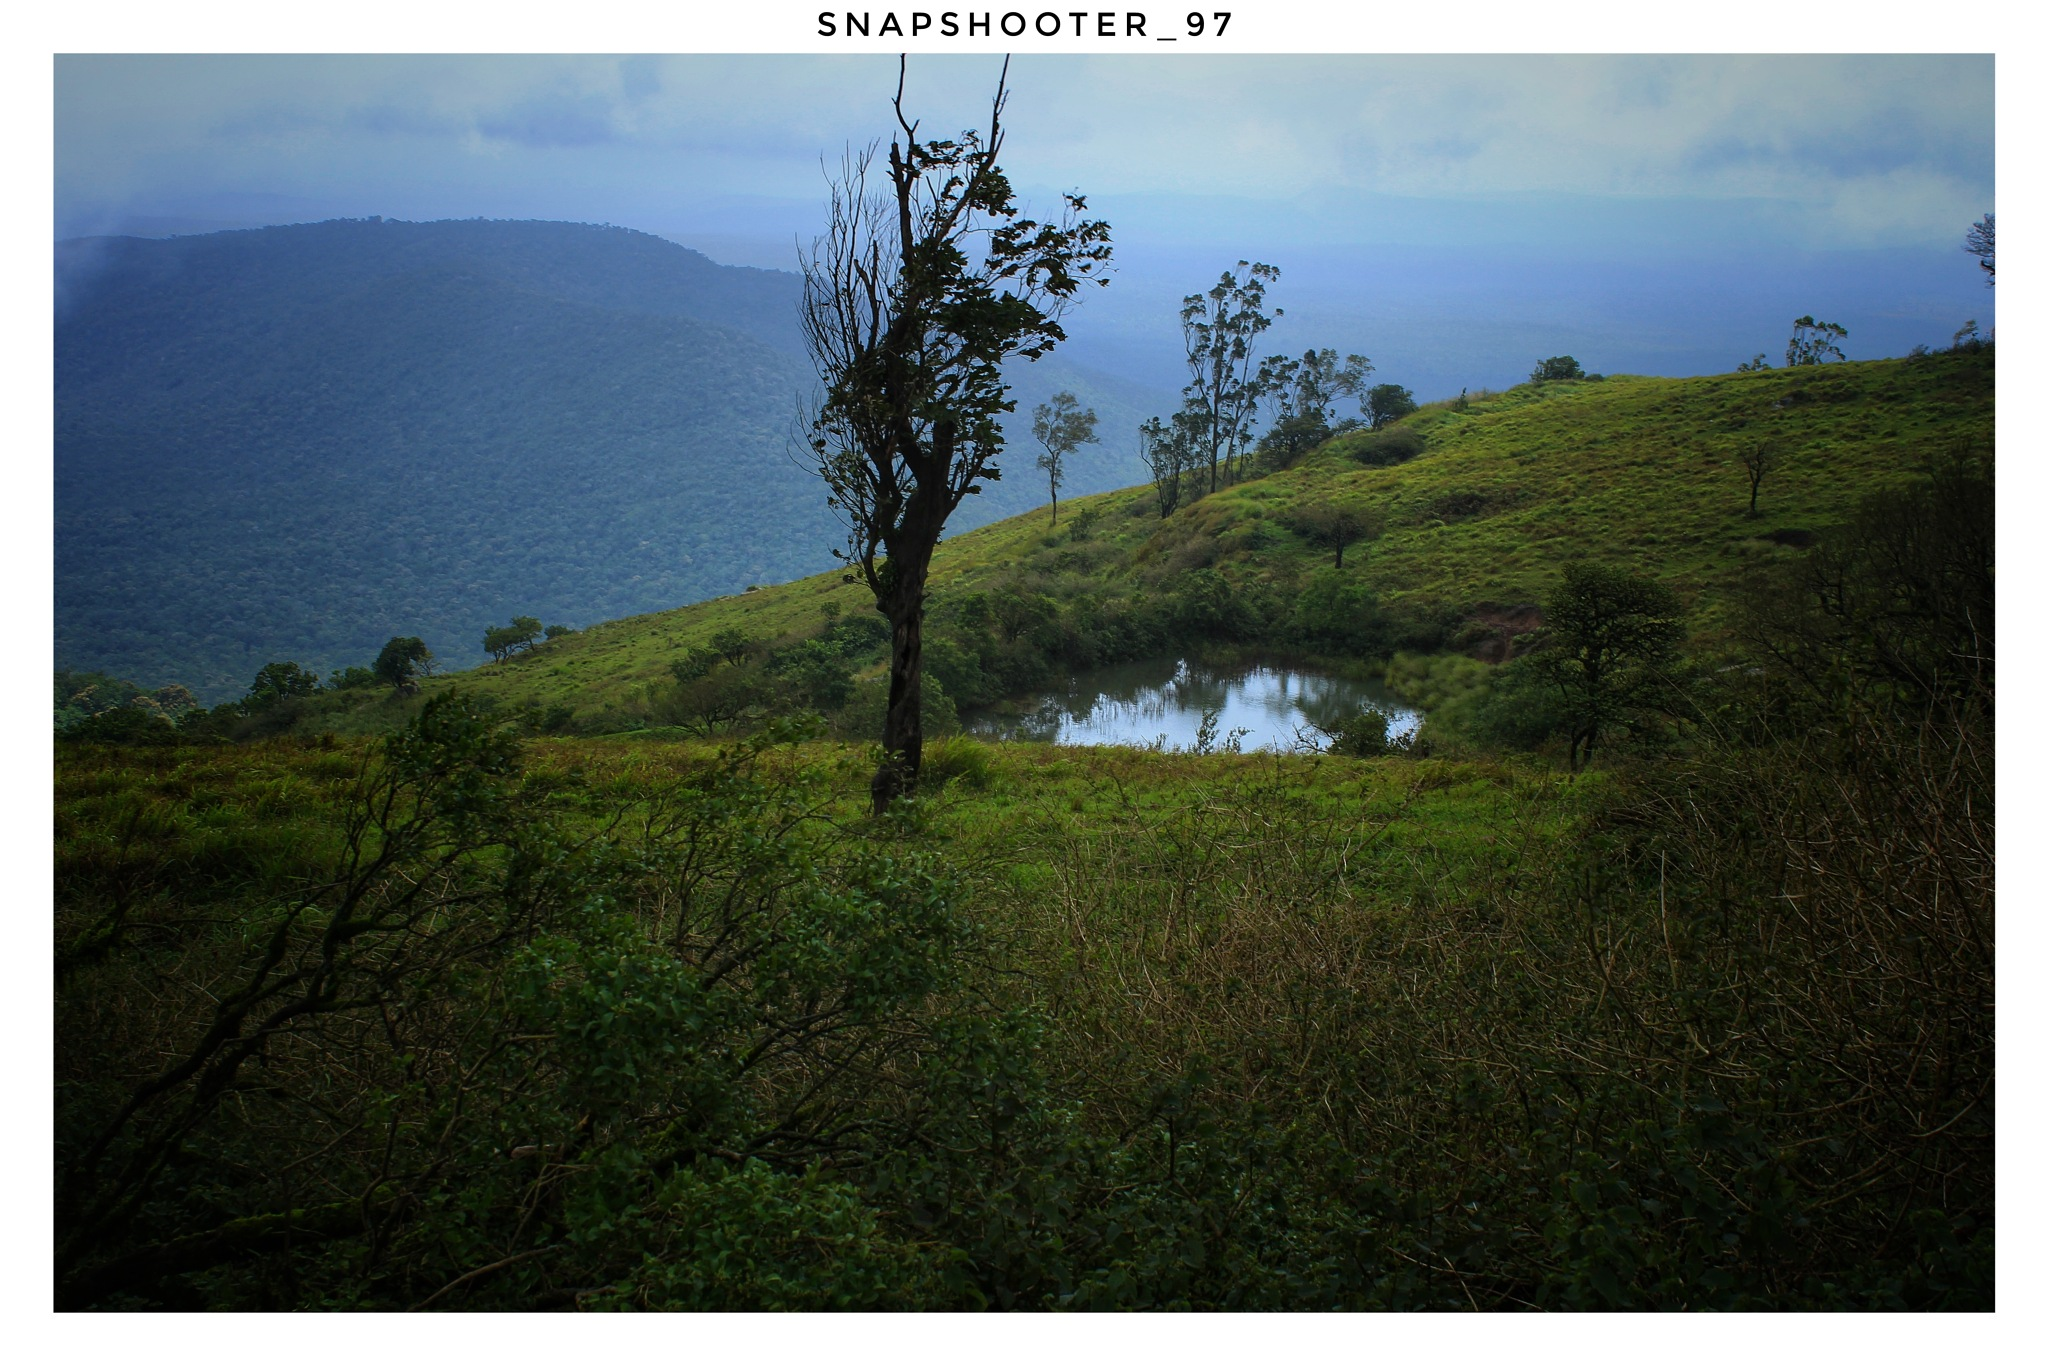 The pond on the top of the peak is one of the most beautiful place by Gokul Sasidharan